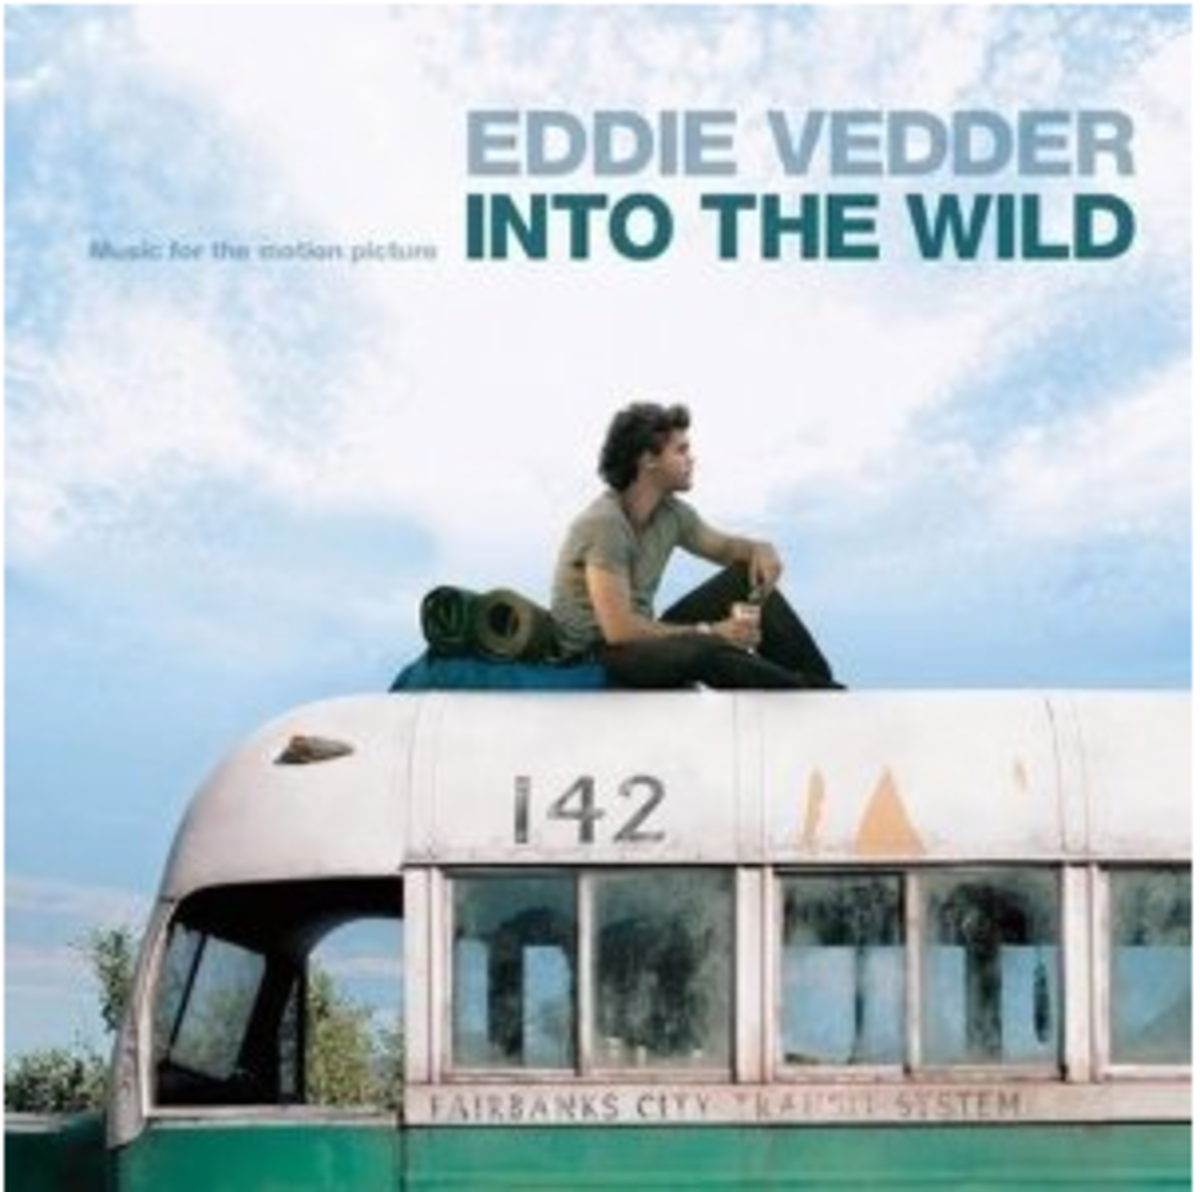 Eddie Vedder Into the Wild Album Cover